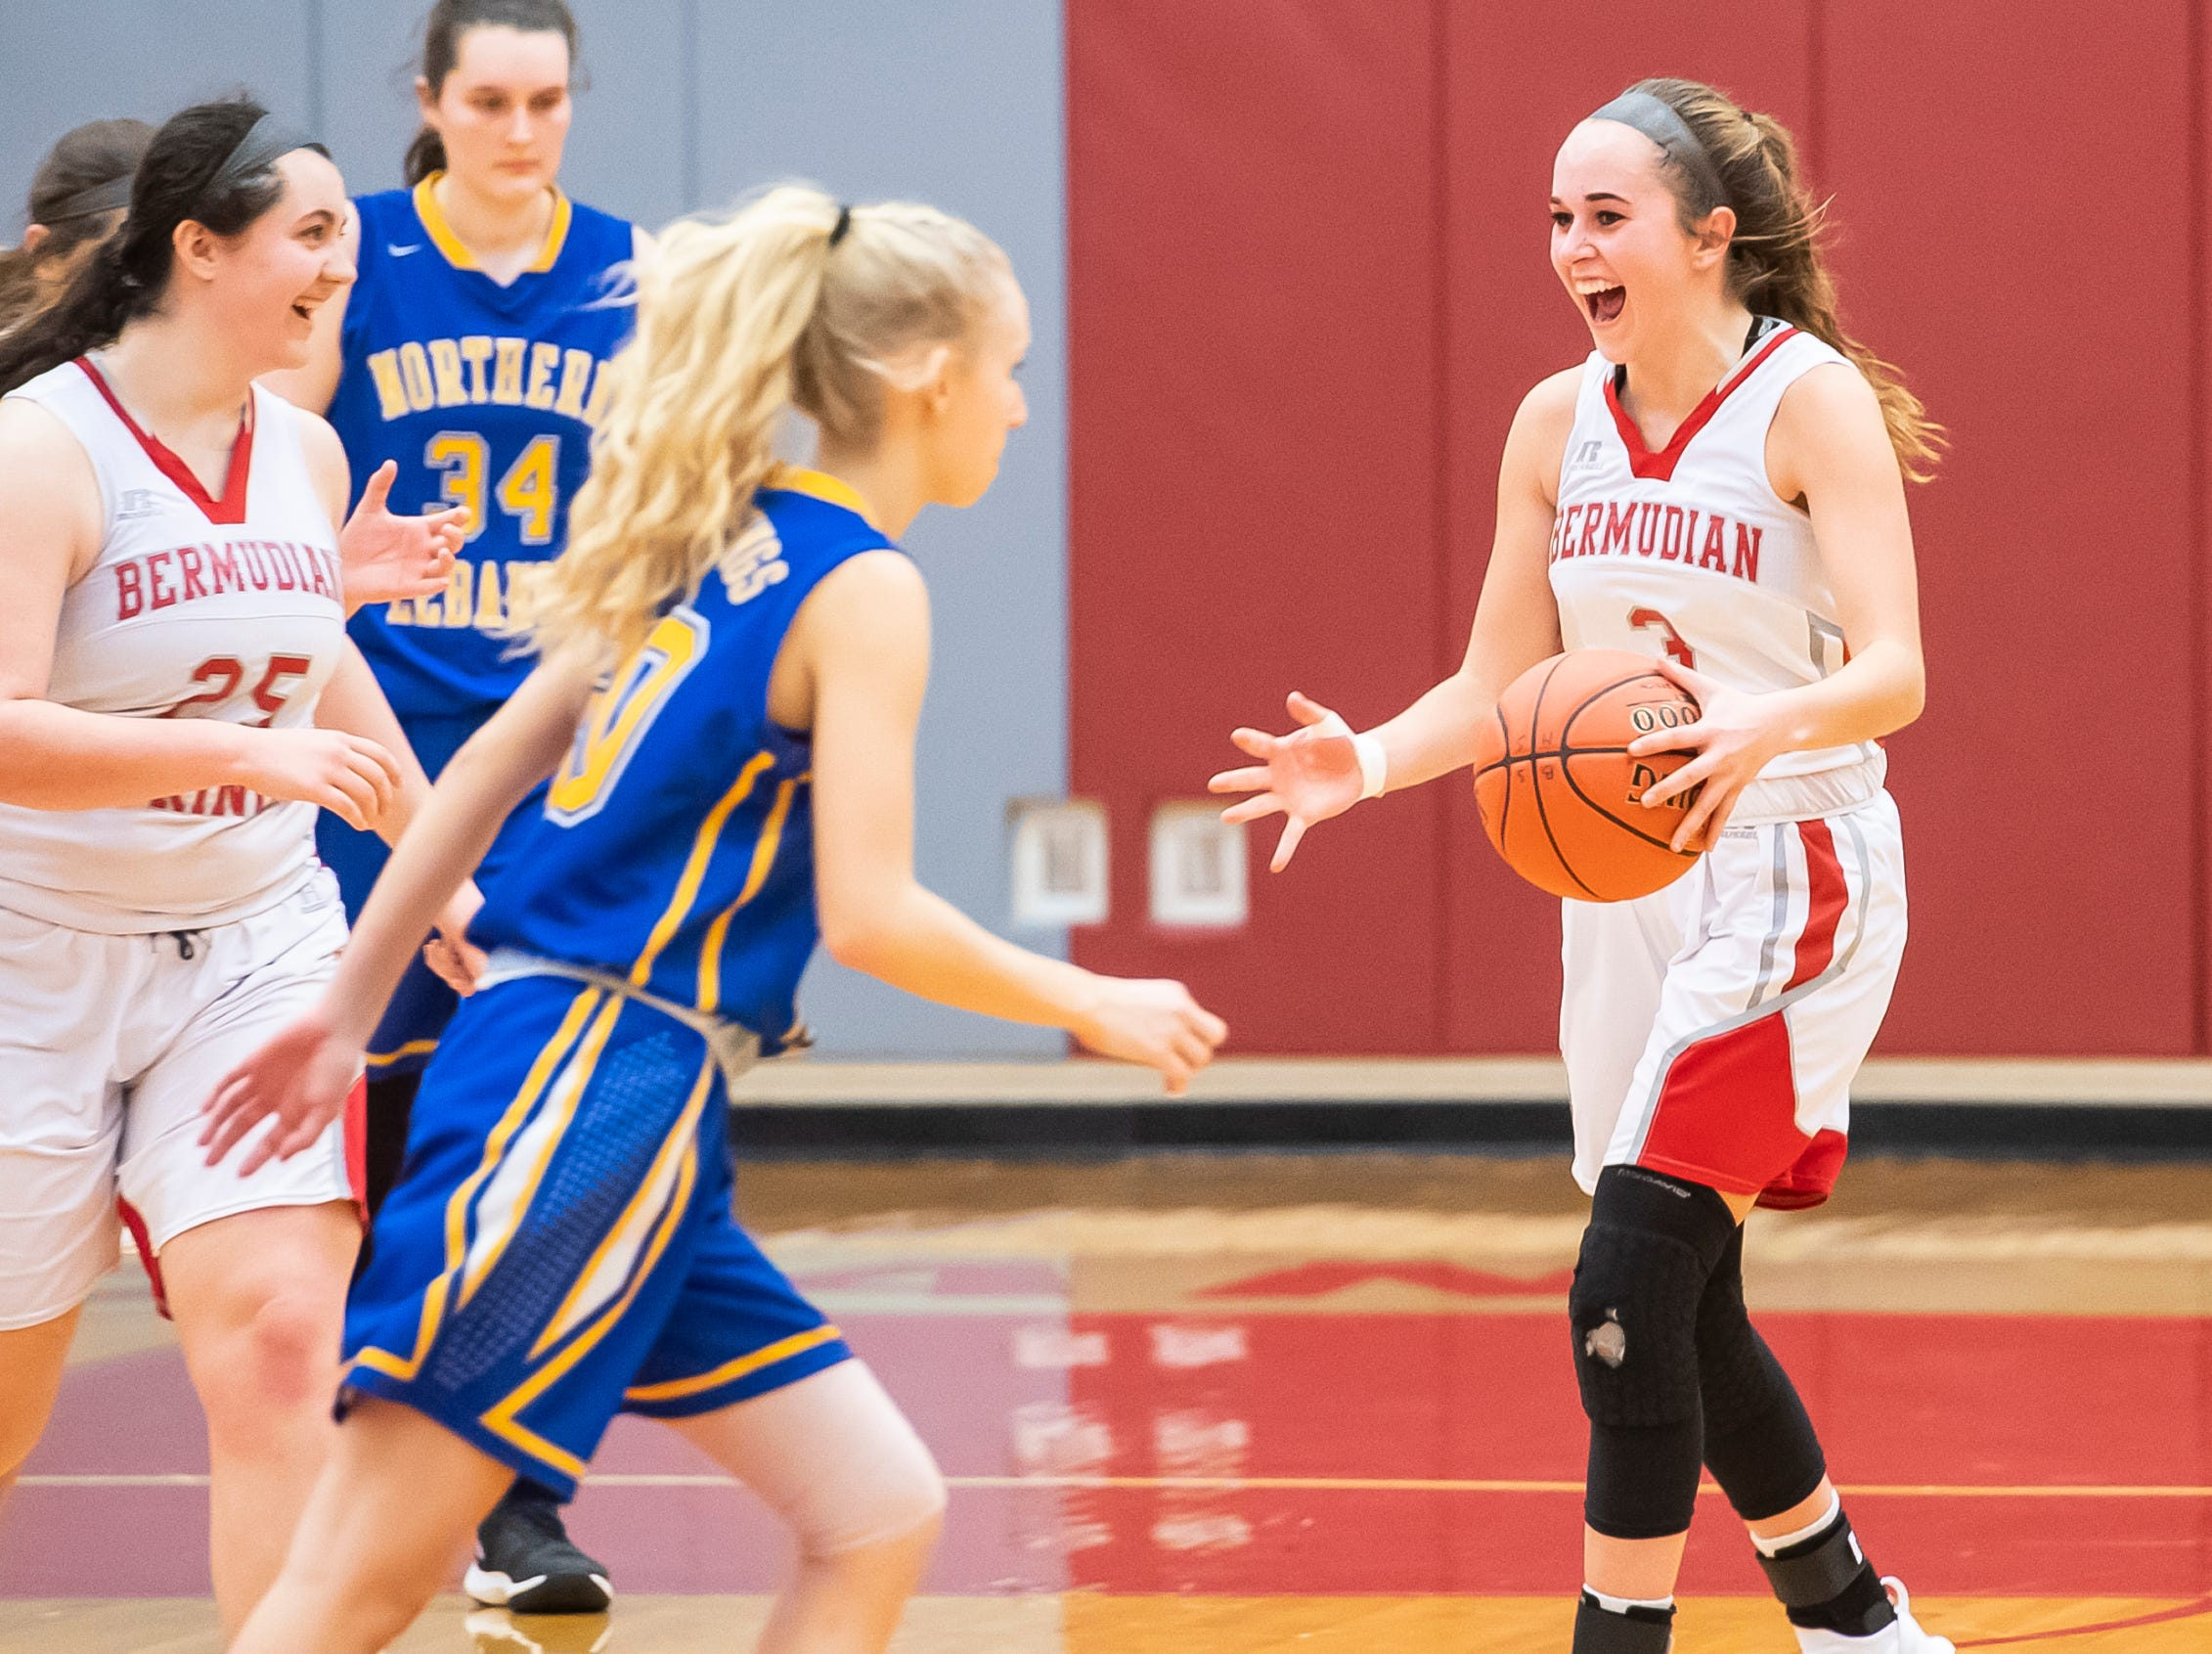 Bermudian Springs' Skyler West (3) and Emily Shearer (25) react after the Eagles defeated Northern Lebanon 58-52 in the first round of the District III 4-A playoffs Tuesday, February 19, 2019.